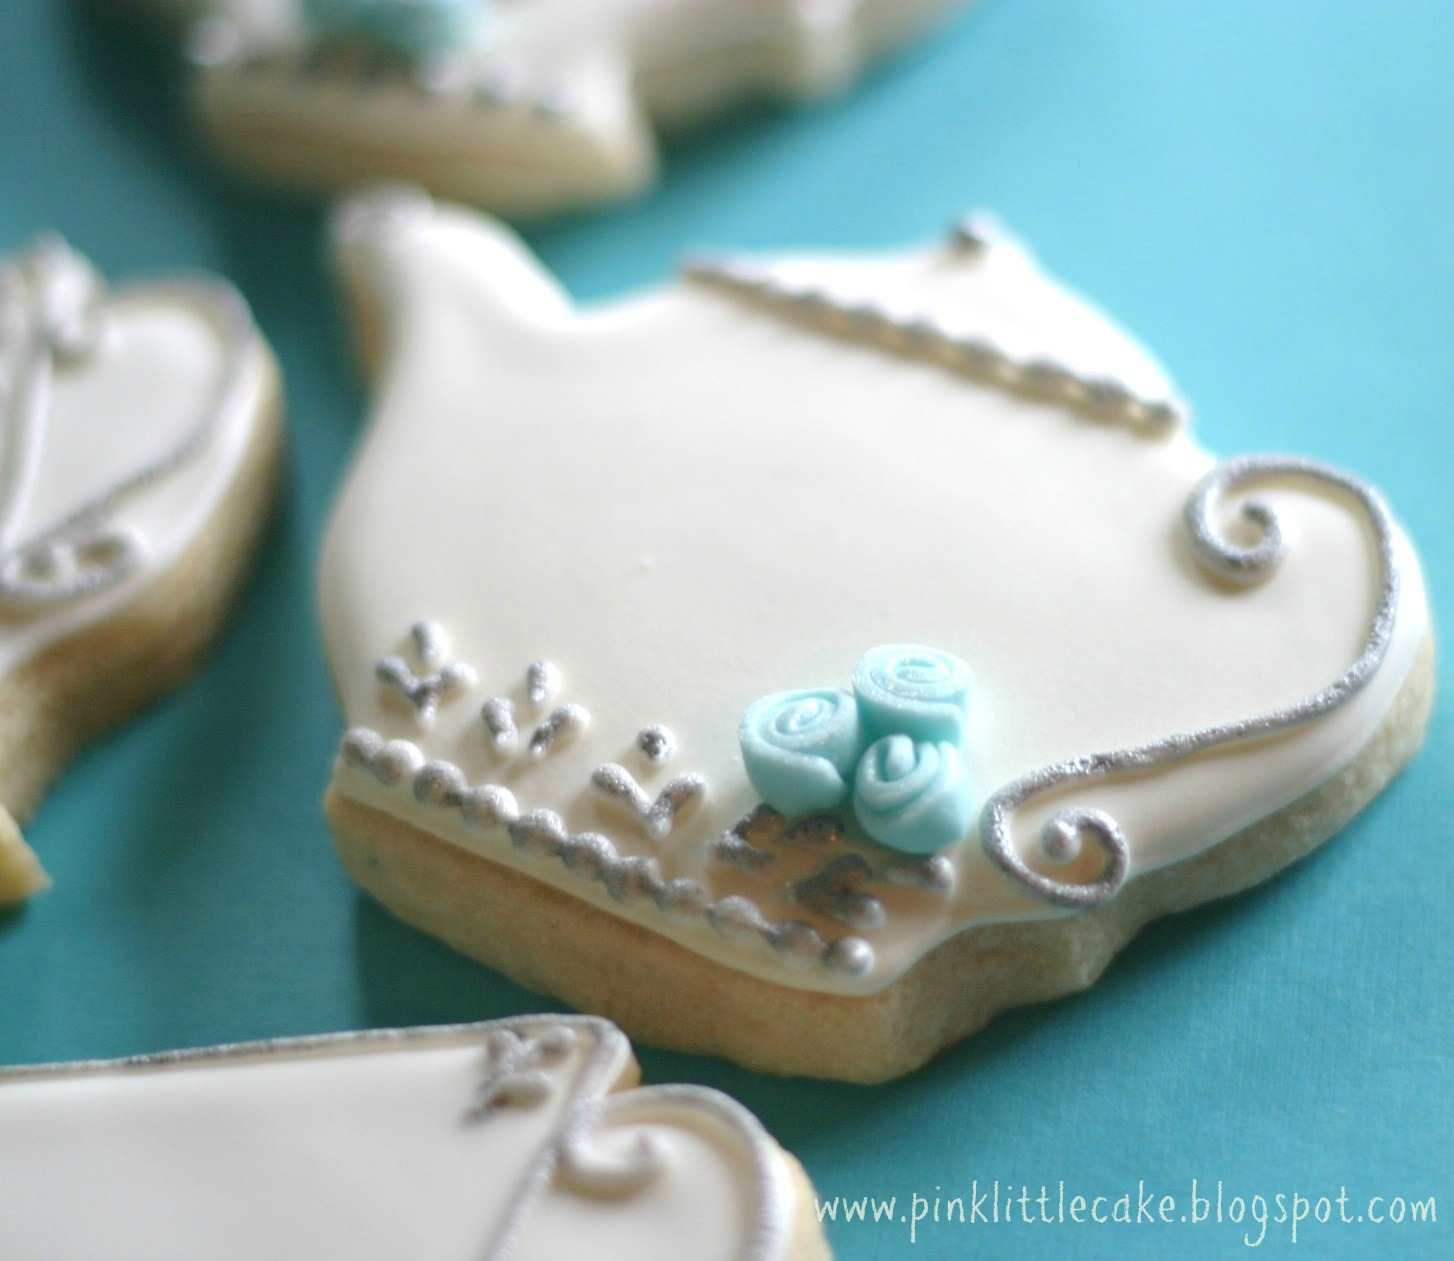 Pink Little Cake: Tea Pot Cookies-Using Luster Dust and Fondant Mini ...